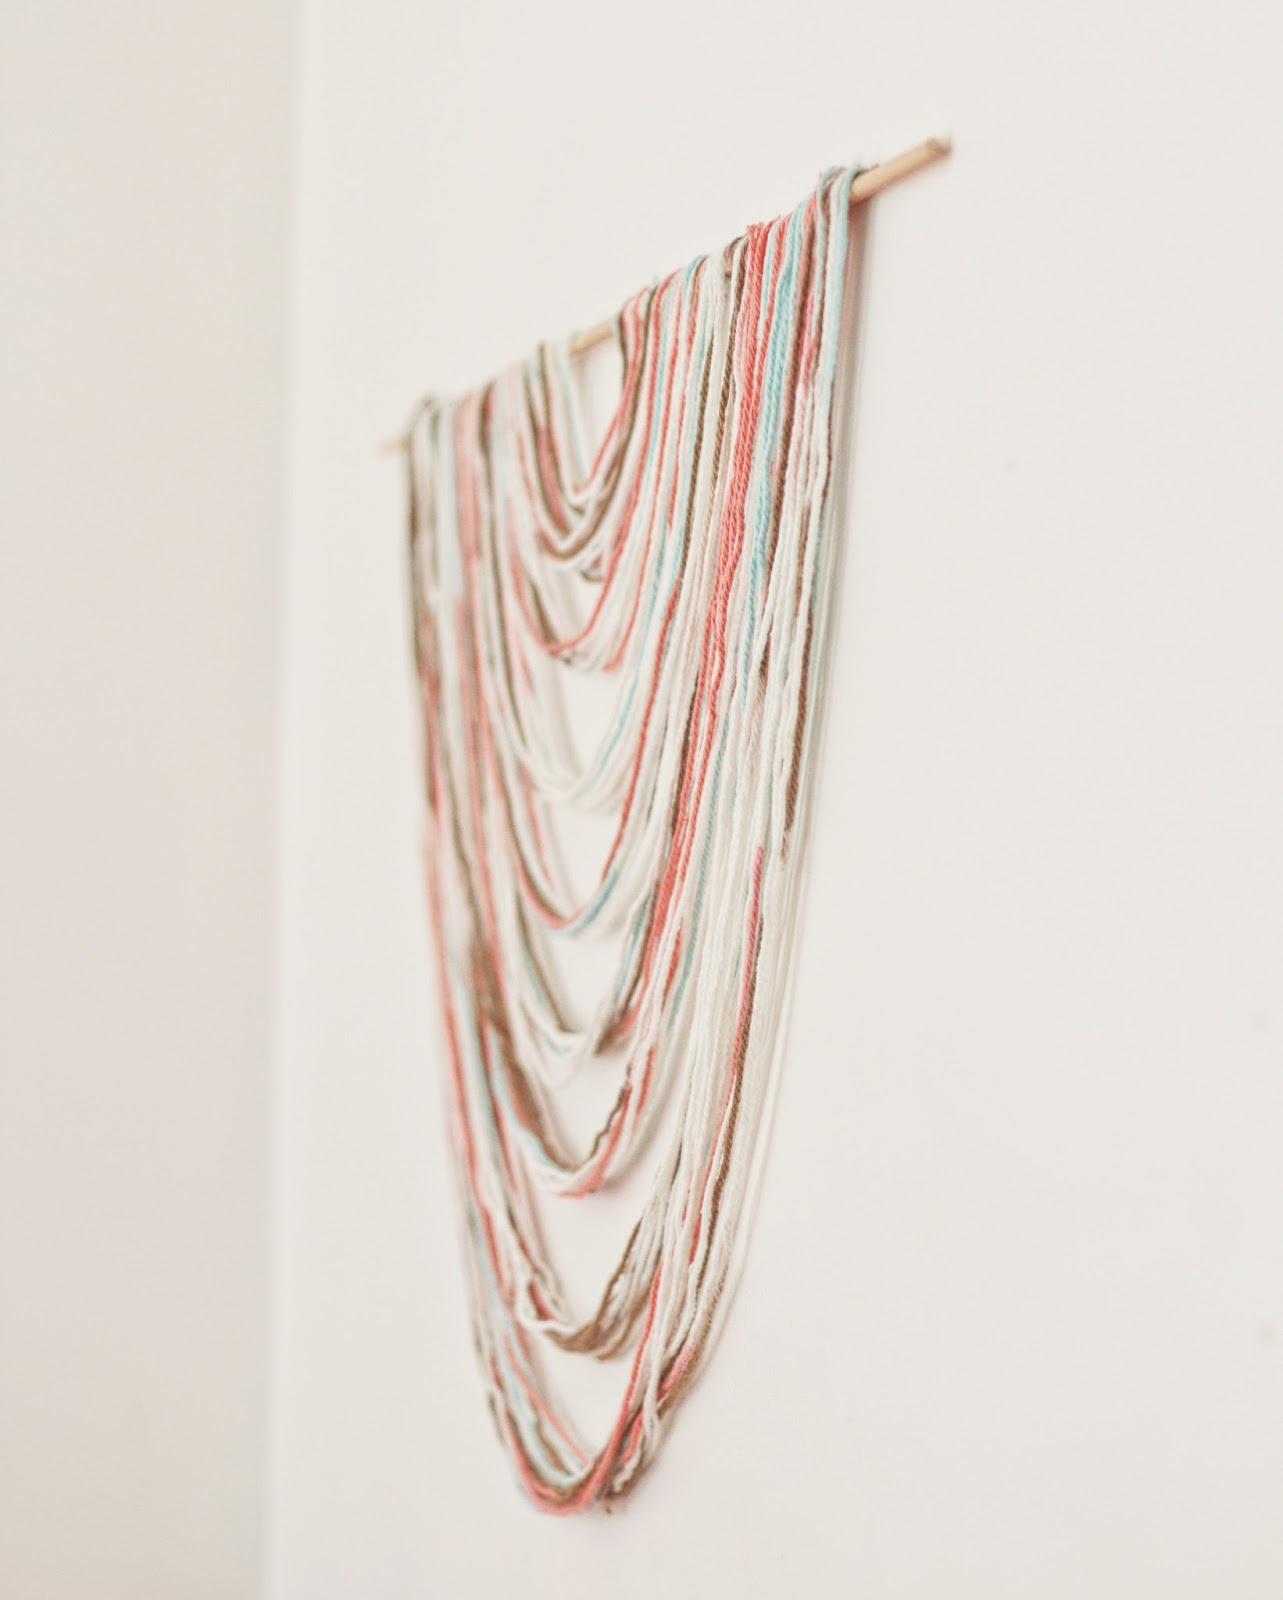 Easy No Weave DIY Wall Hanging for Less than $4